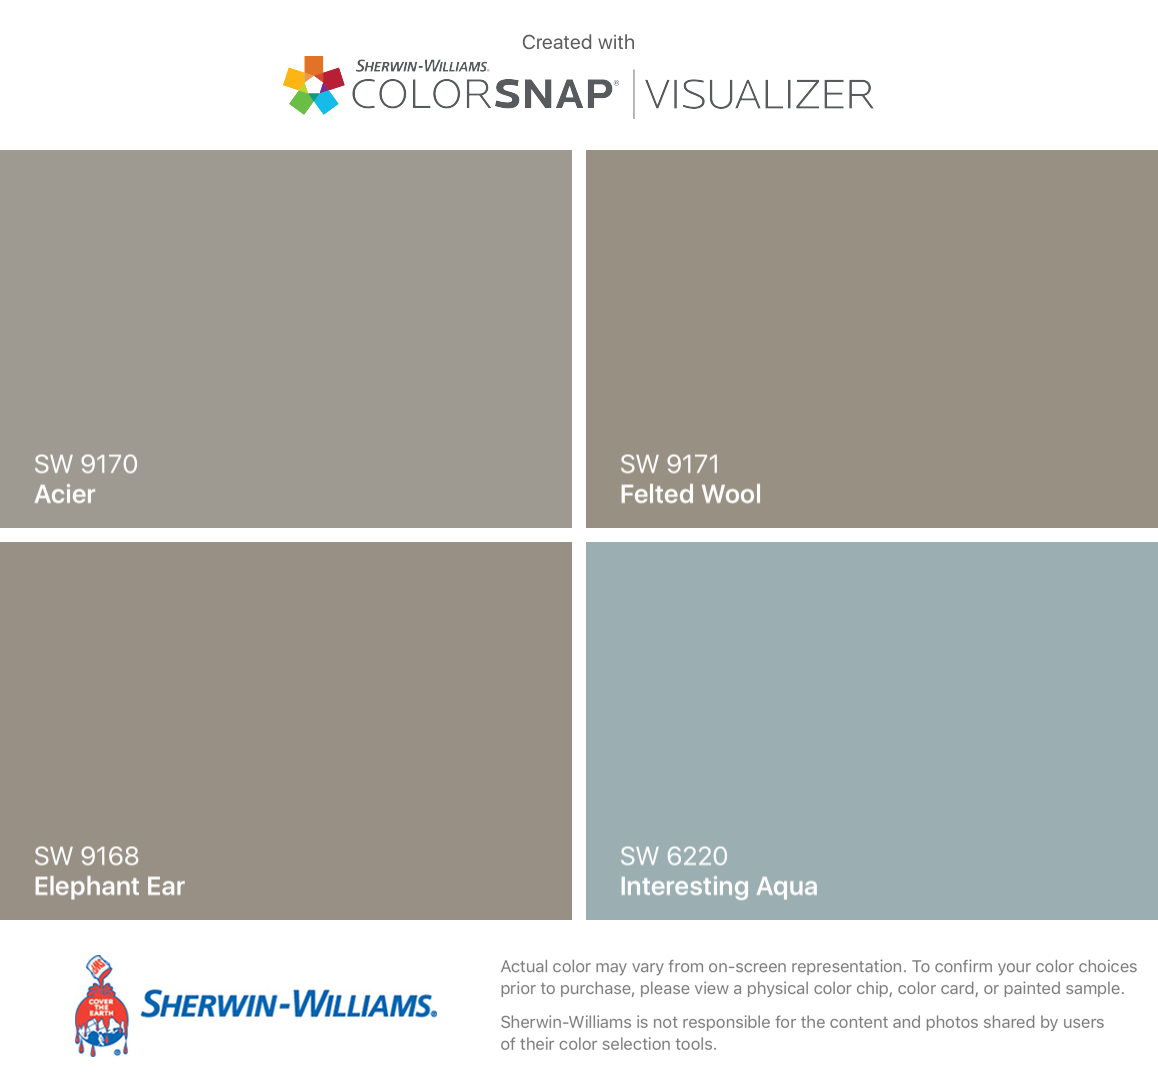 I Found These Colors With Colorsnap Visualizer For Iphone By Sherwin Williams Acier Sw 9170 Elephant Ear 9168 Felted Wool 9171